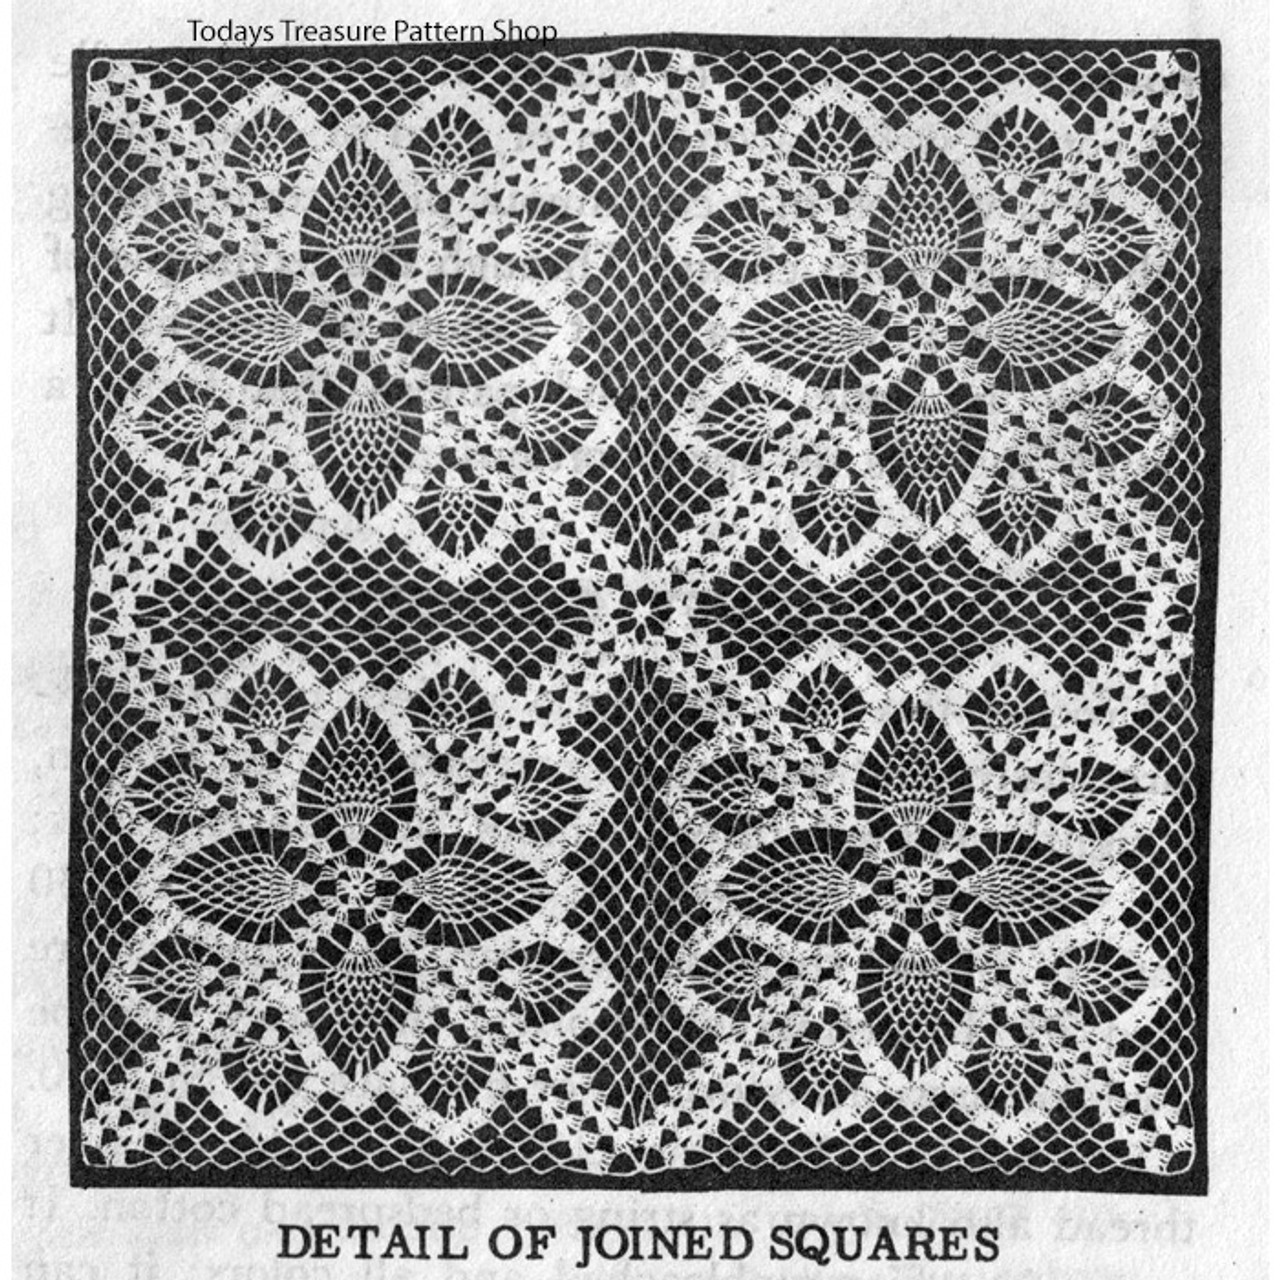 Joined Pineapple Crochet Squares Pattern, Design 7174